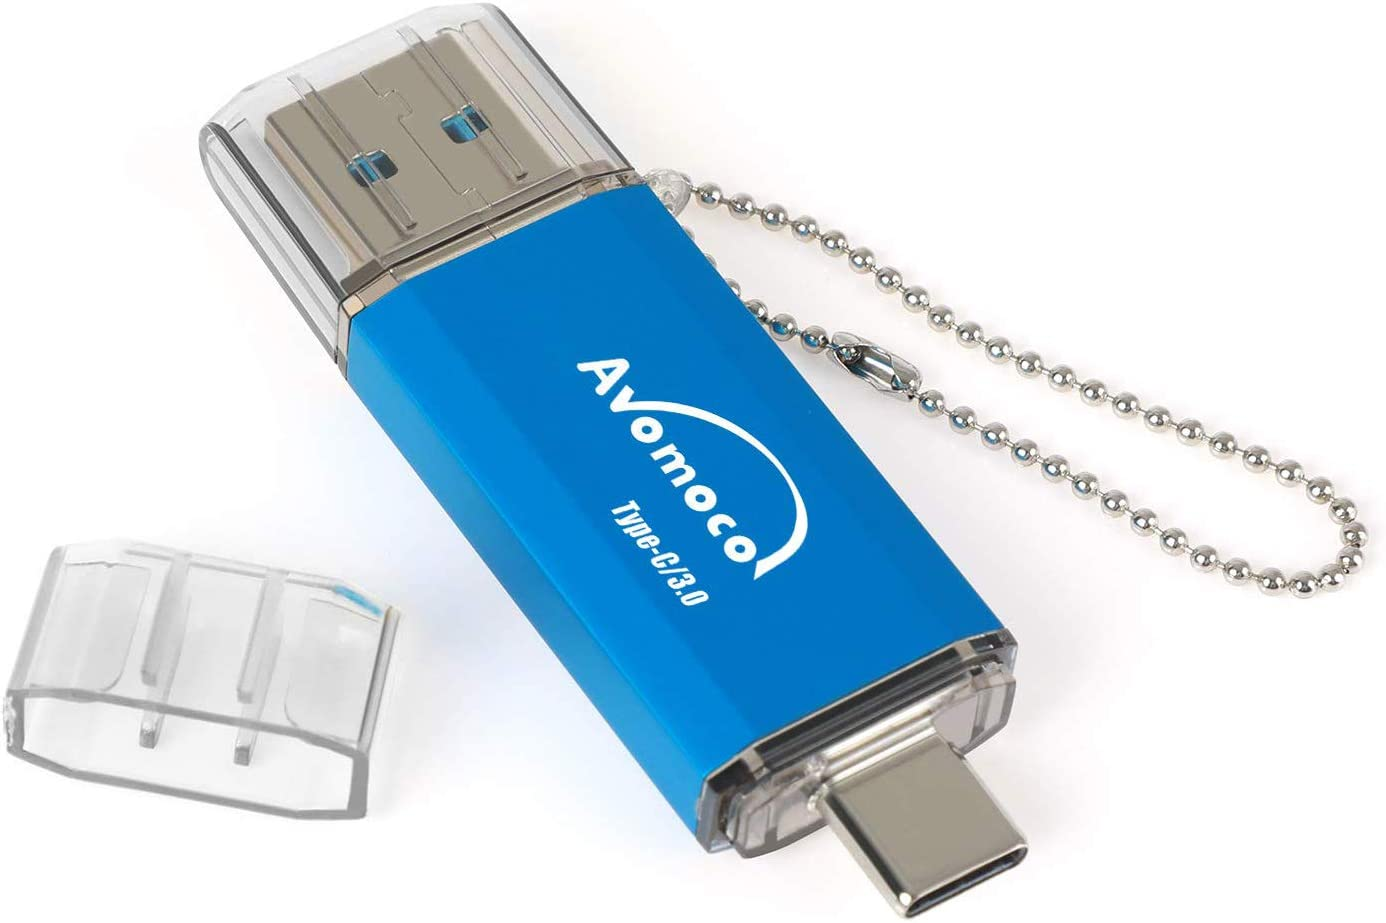 Cheap SALE Start Avomoco USB 3.0 3.1 32GB Type C Drive Soldering Dual High for Flash Speed